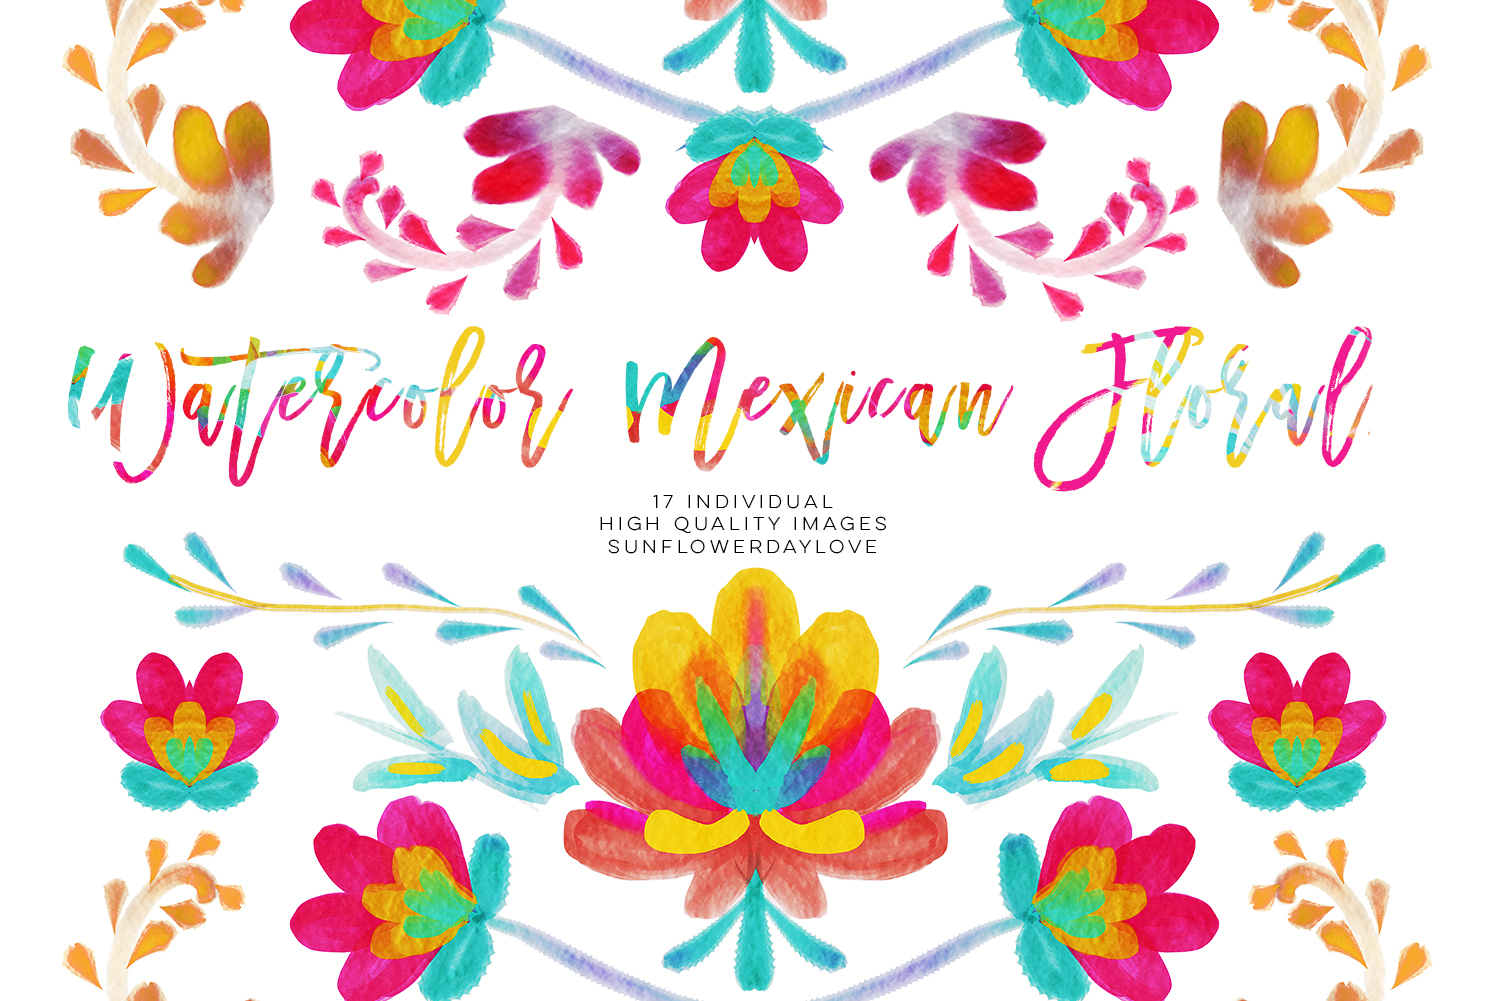 Watercolor mexican floral clipart, fiesta invitation clipart, Mexican  blanket Serape, watercolor hand painted cinco de mayo clipart colorful.